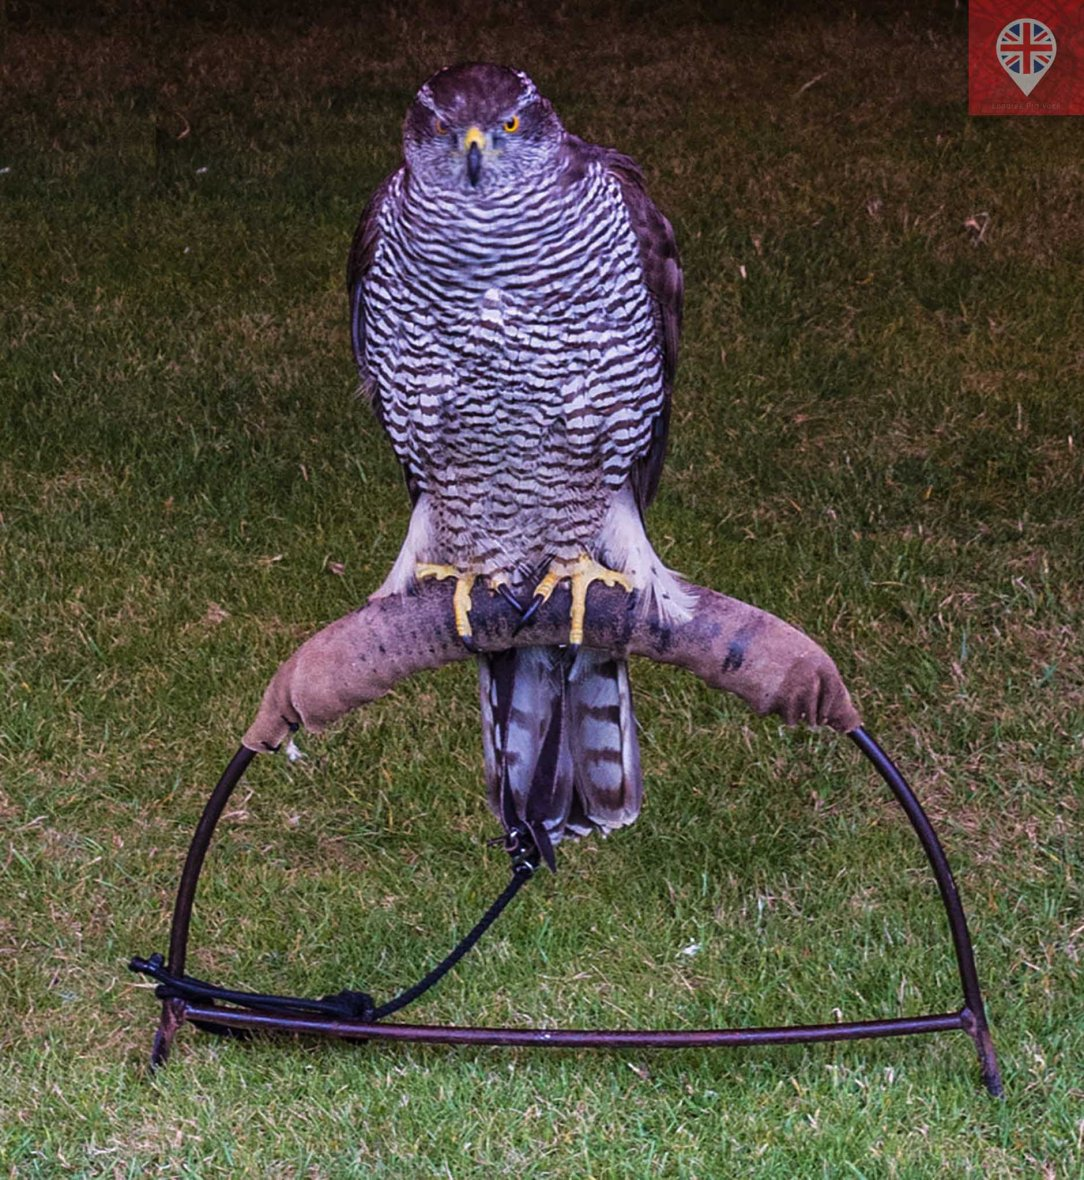 hampton court tudor party falcon